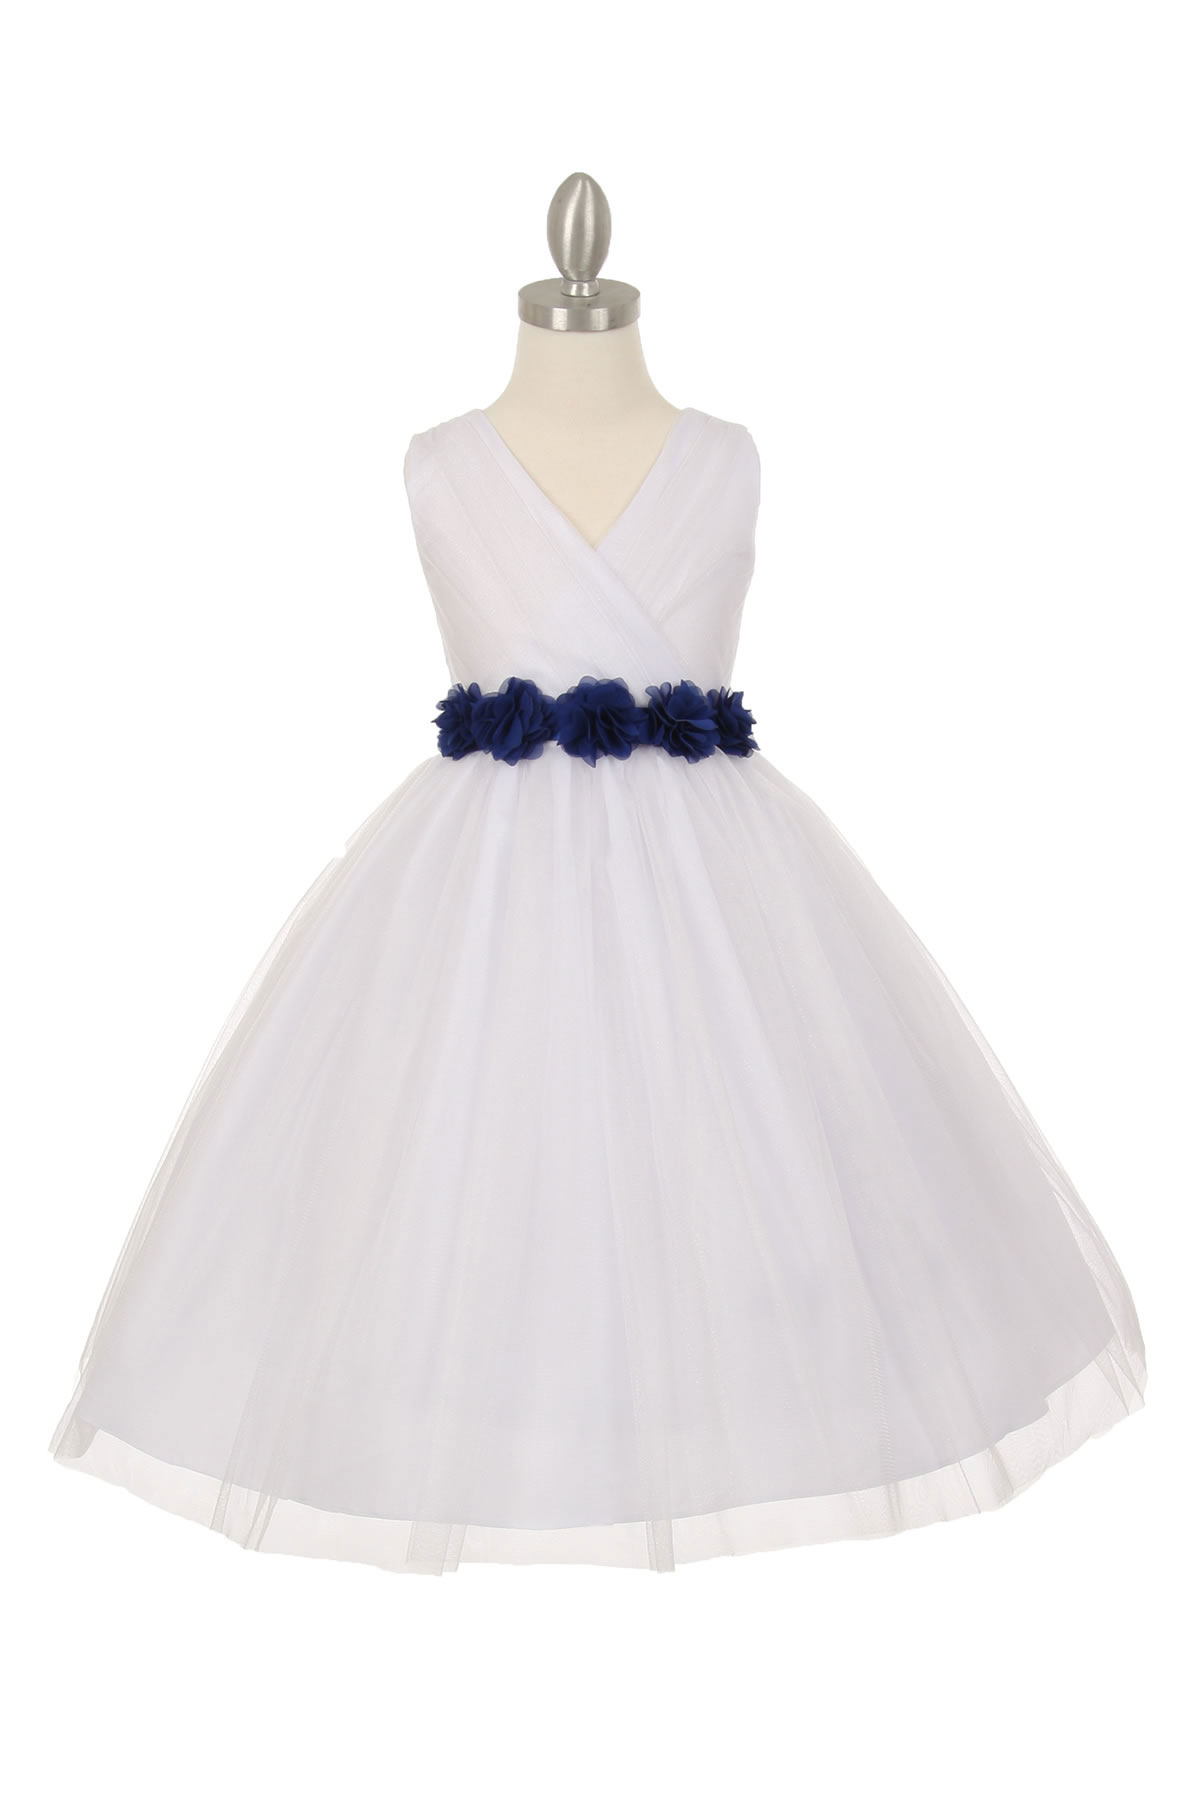 CC 1220WHRY Girls Dress Style 1220 WHITE Dress with 14